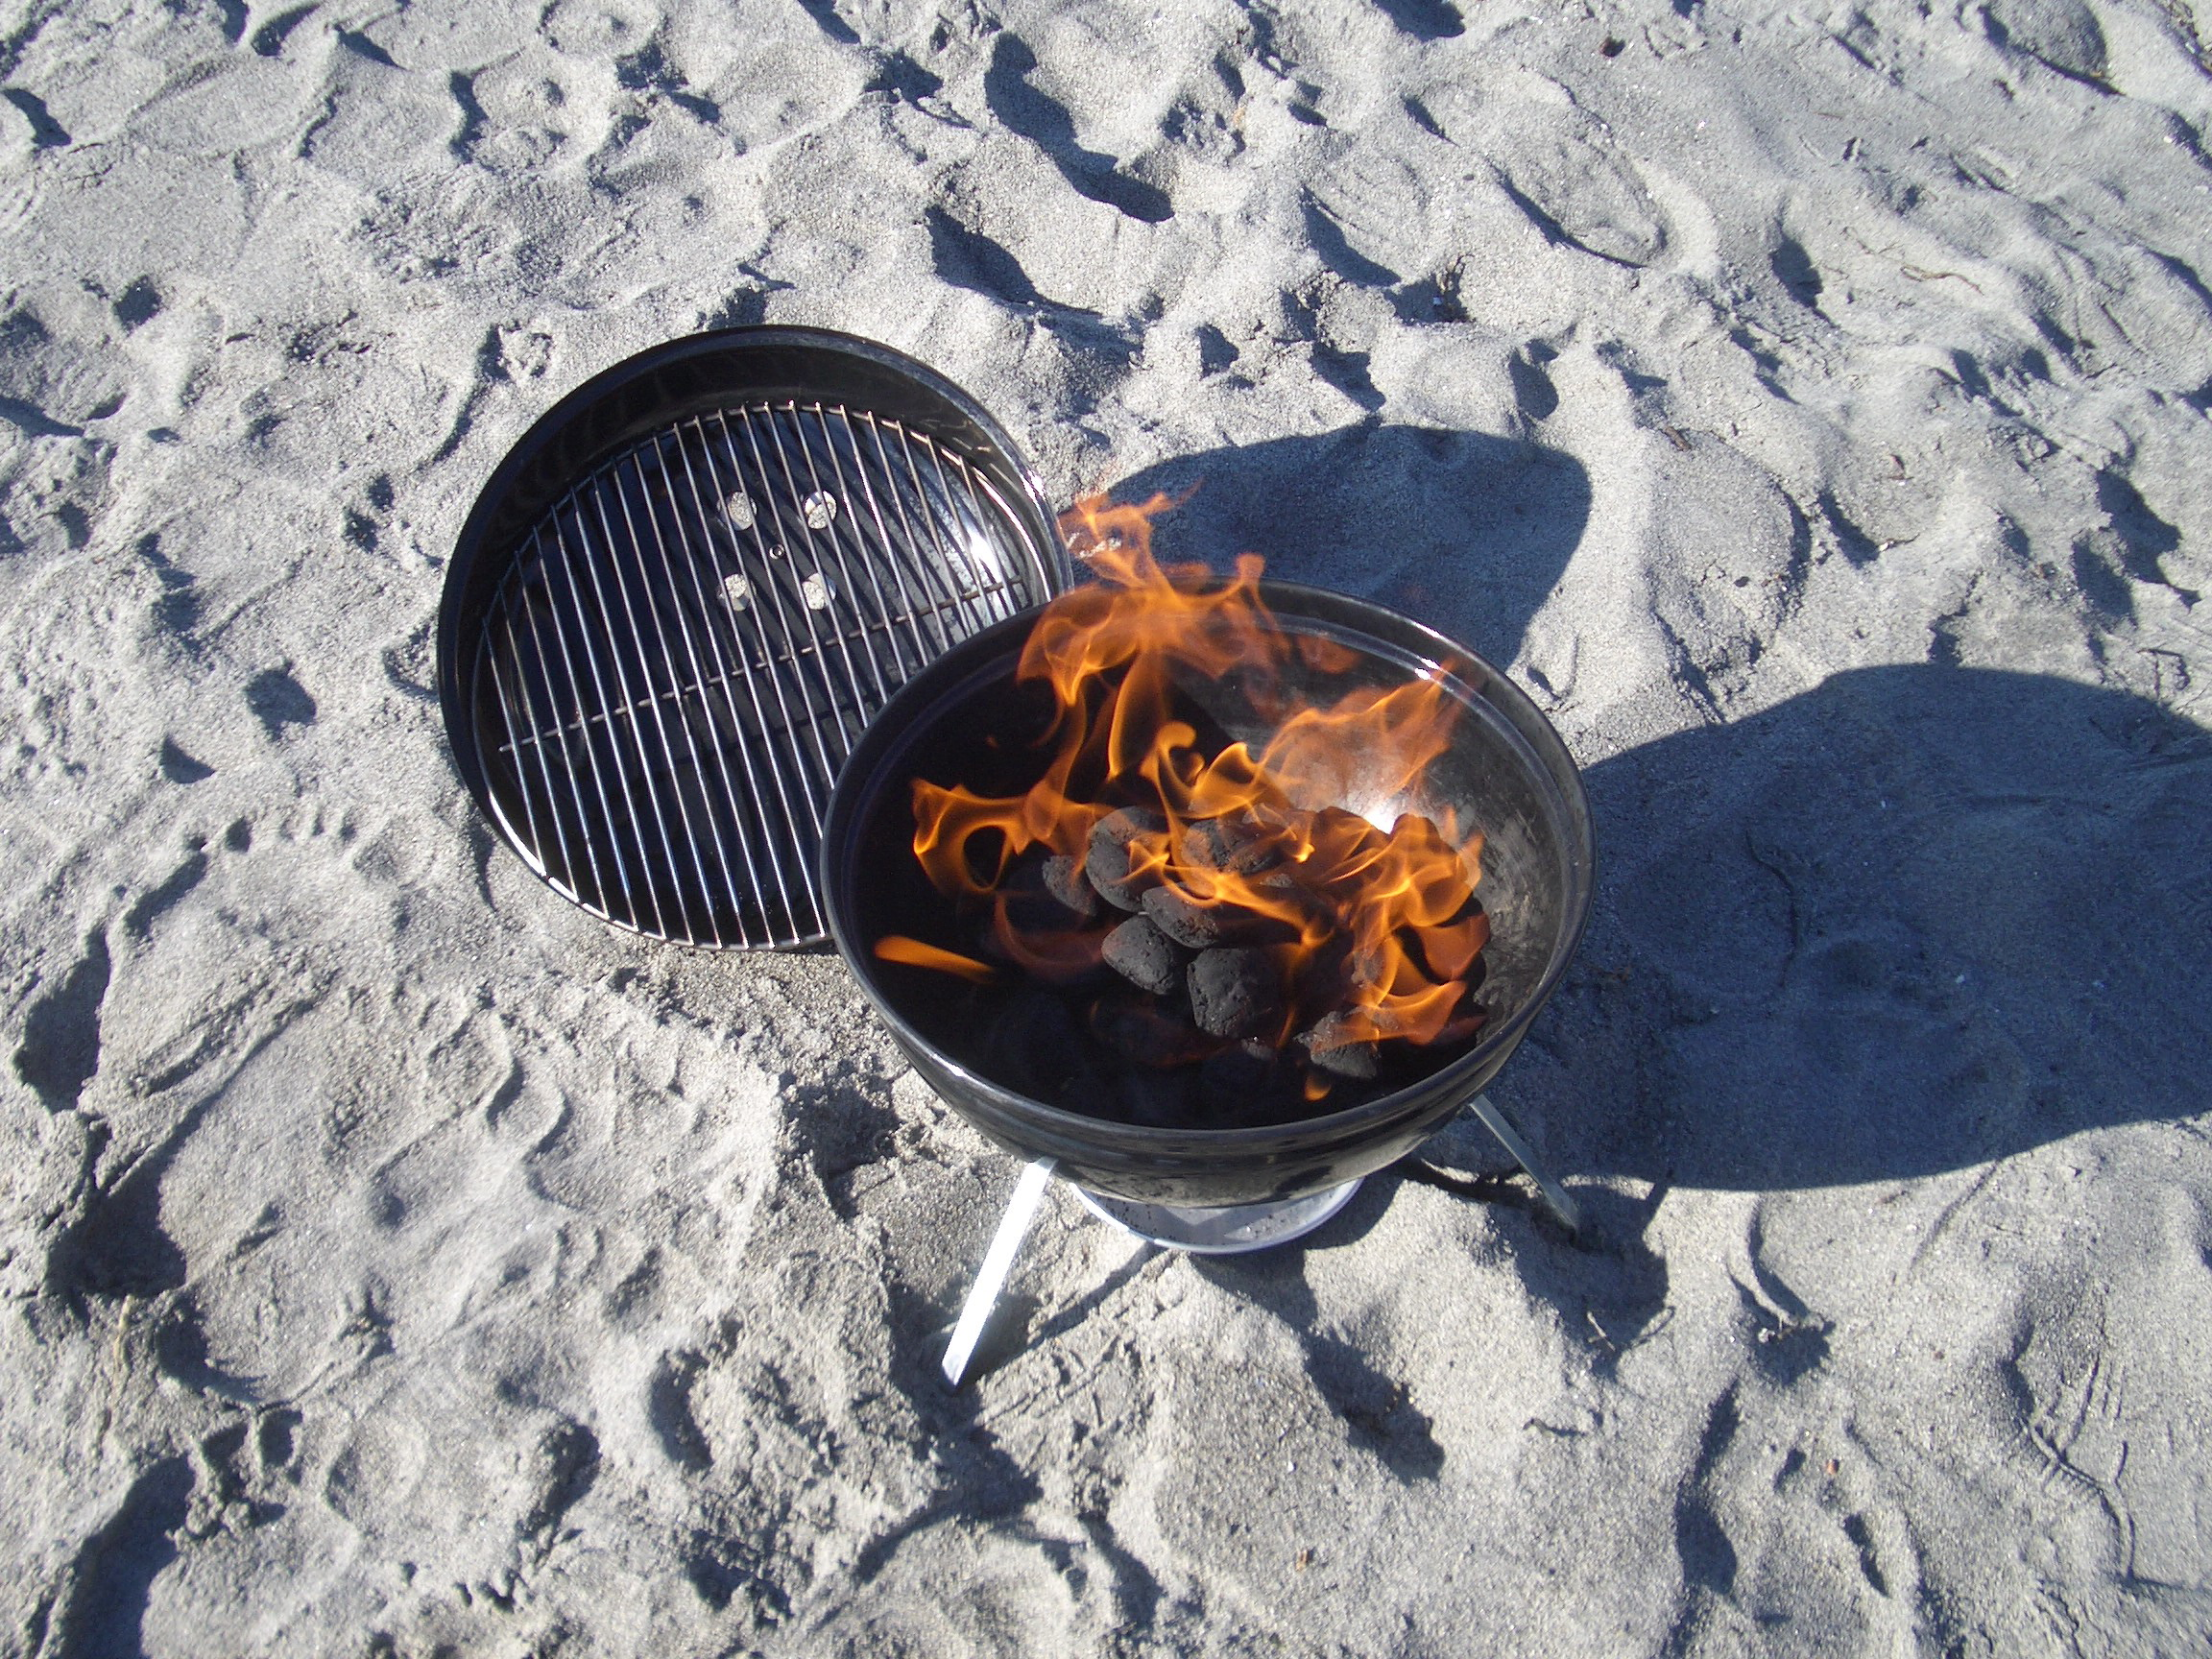 Jan 25,  · Grilling at the beach I've promised to bring some dough to a beach barbecue so that I can pat it out and we can have fresh flatbread. (Yes, it's kinda cold here in Honolulu, but 65 degrees in the evening IS cold for us.).